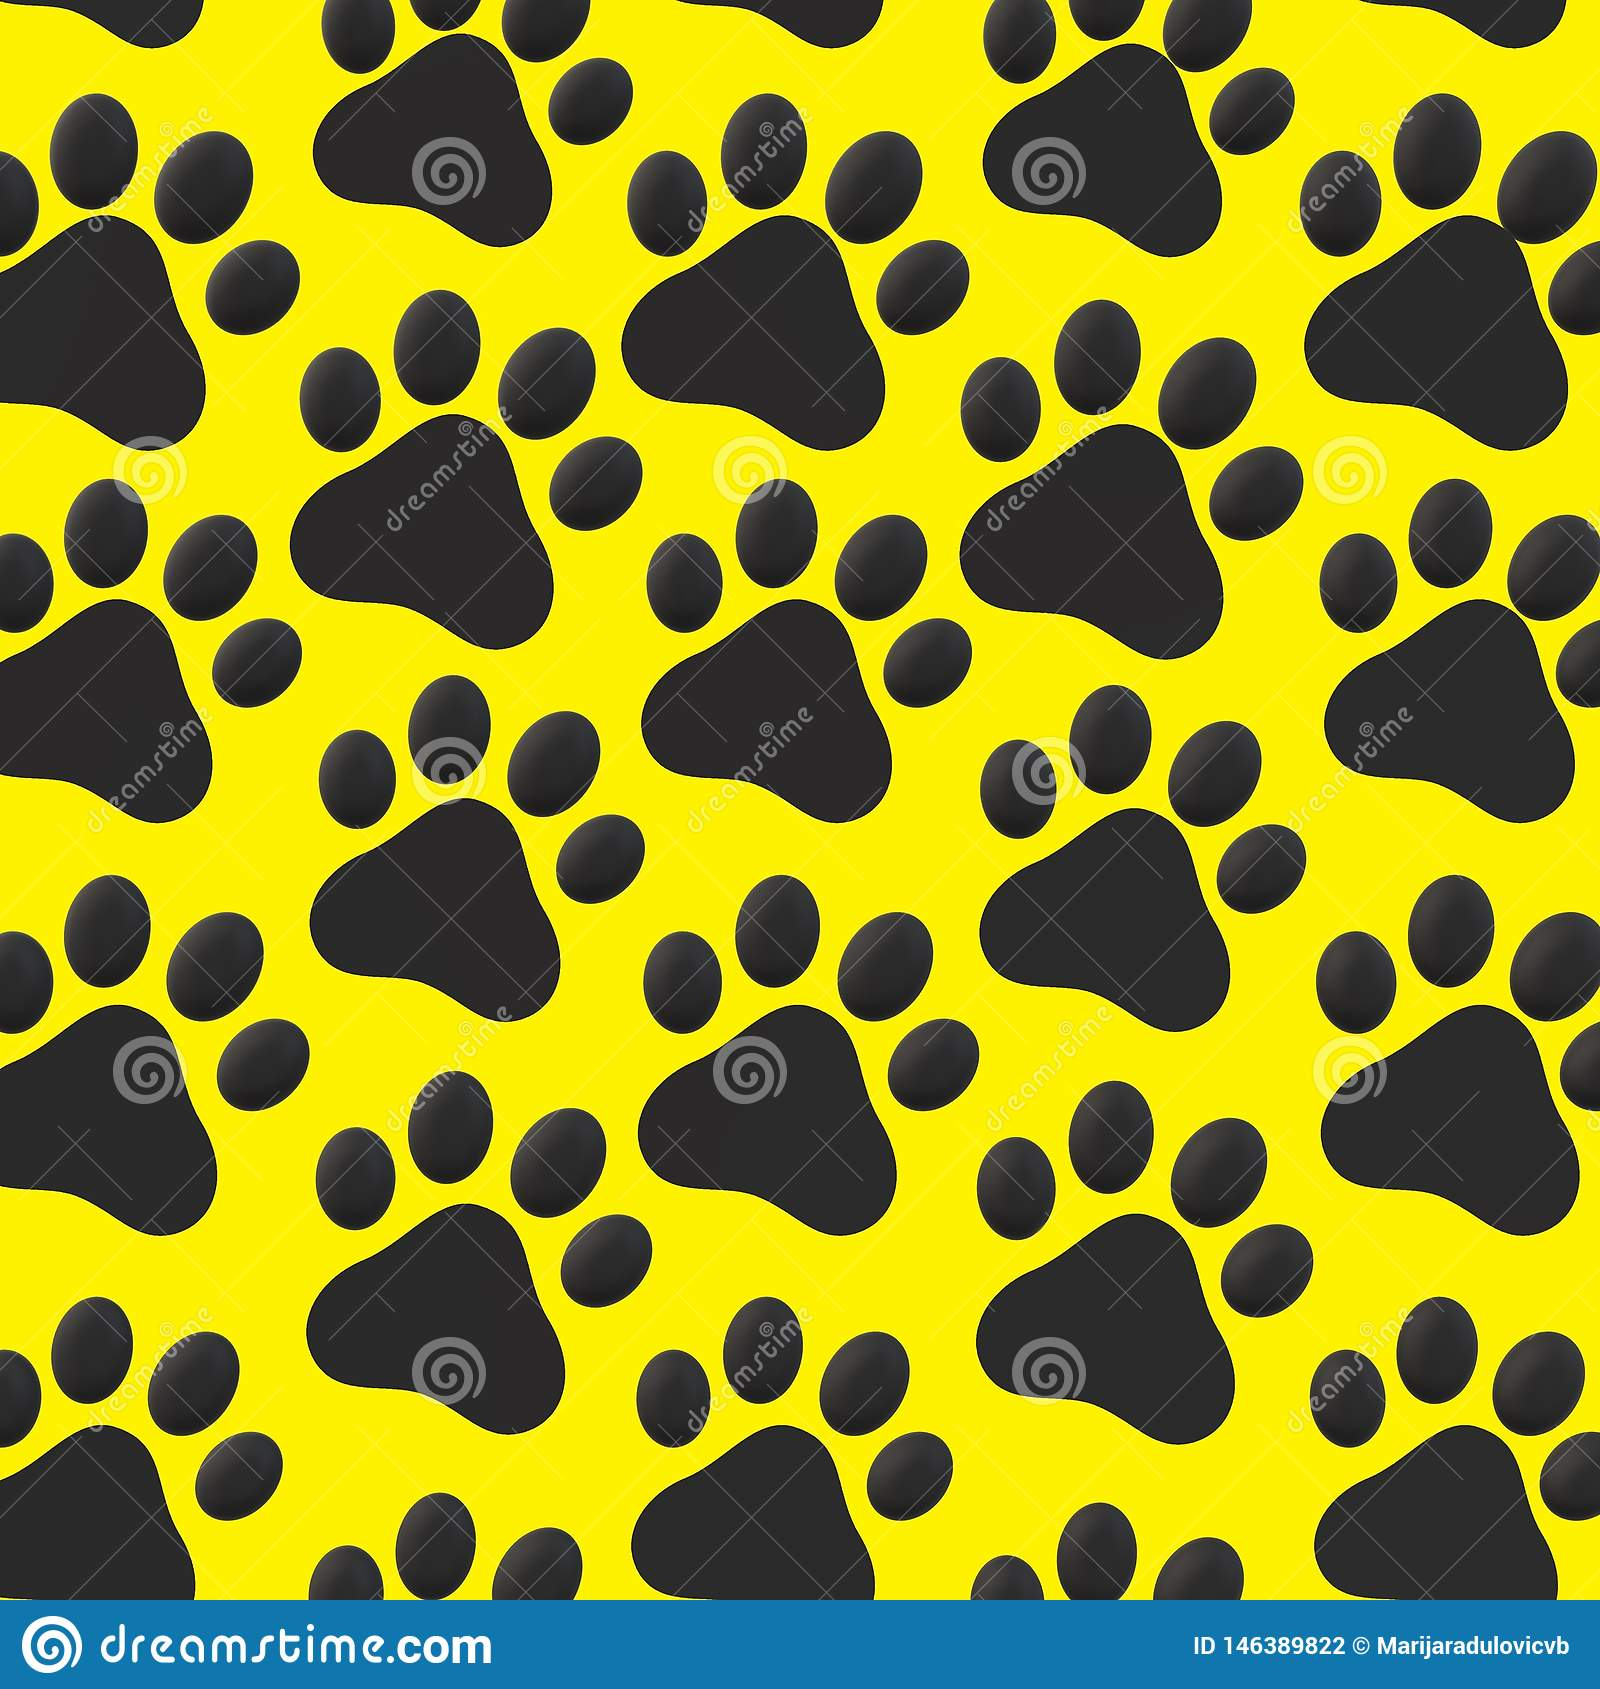 Black Cat Paws On Yellow Background Pattern Stock Illustration Illustration Of Yellow Background 146389822